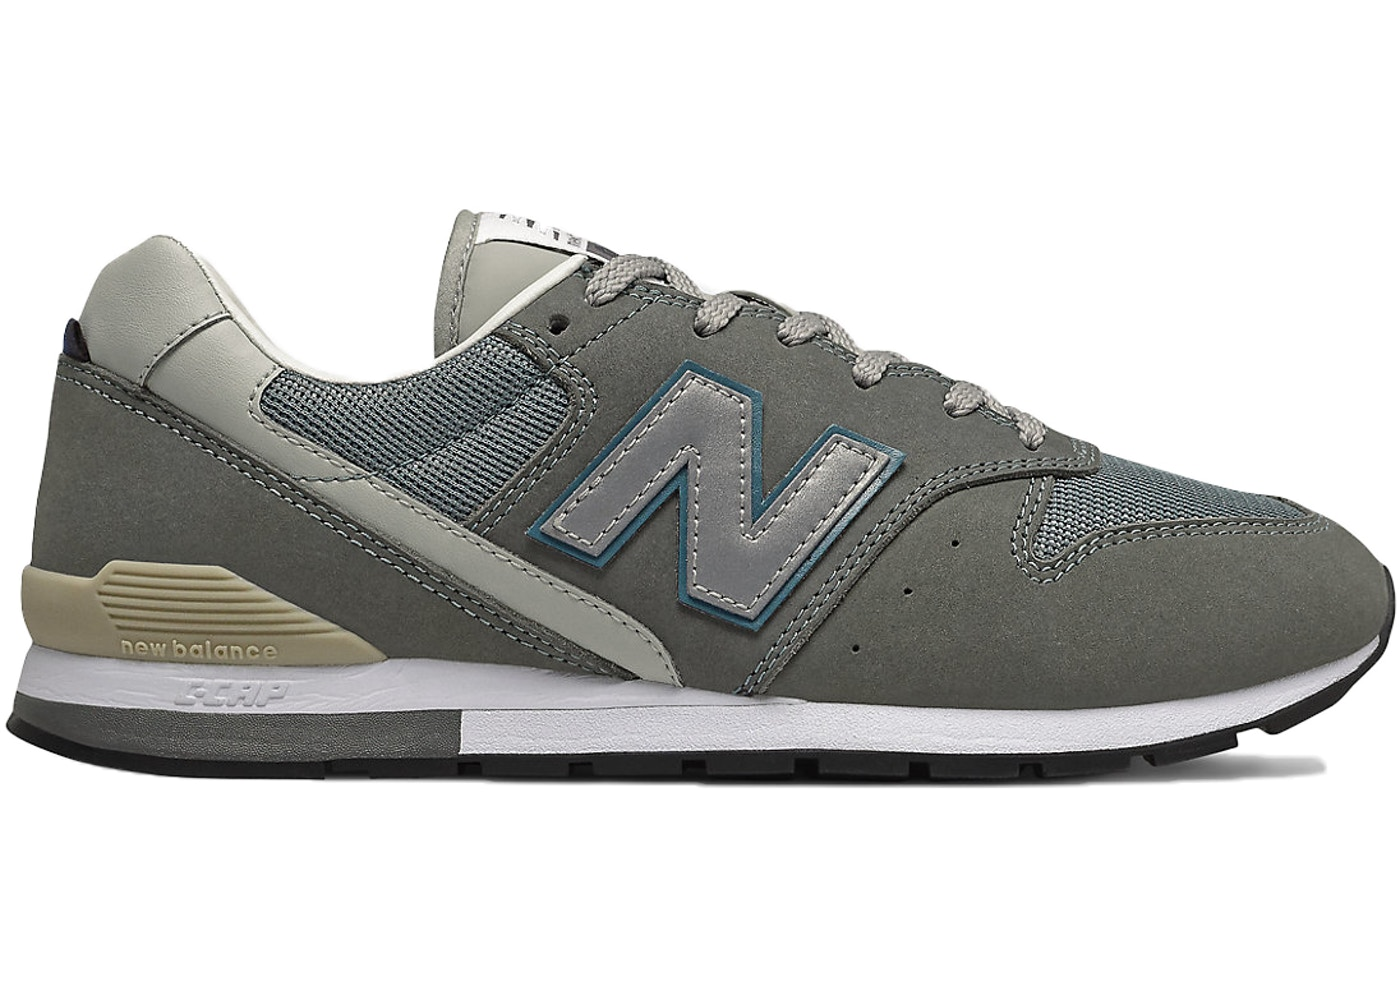 promo code 126c4 5d8fb New Balance 996 Grey